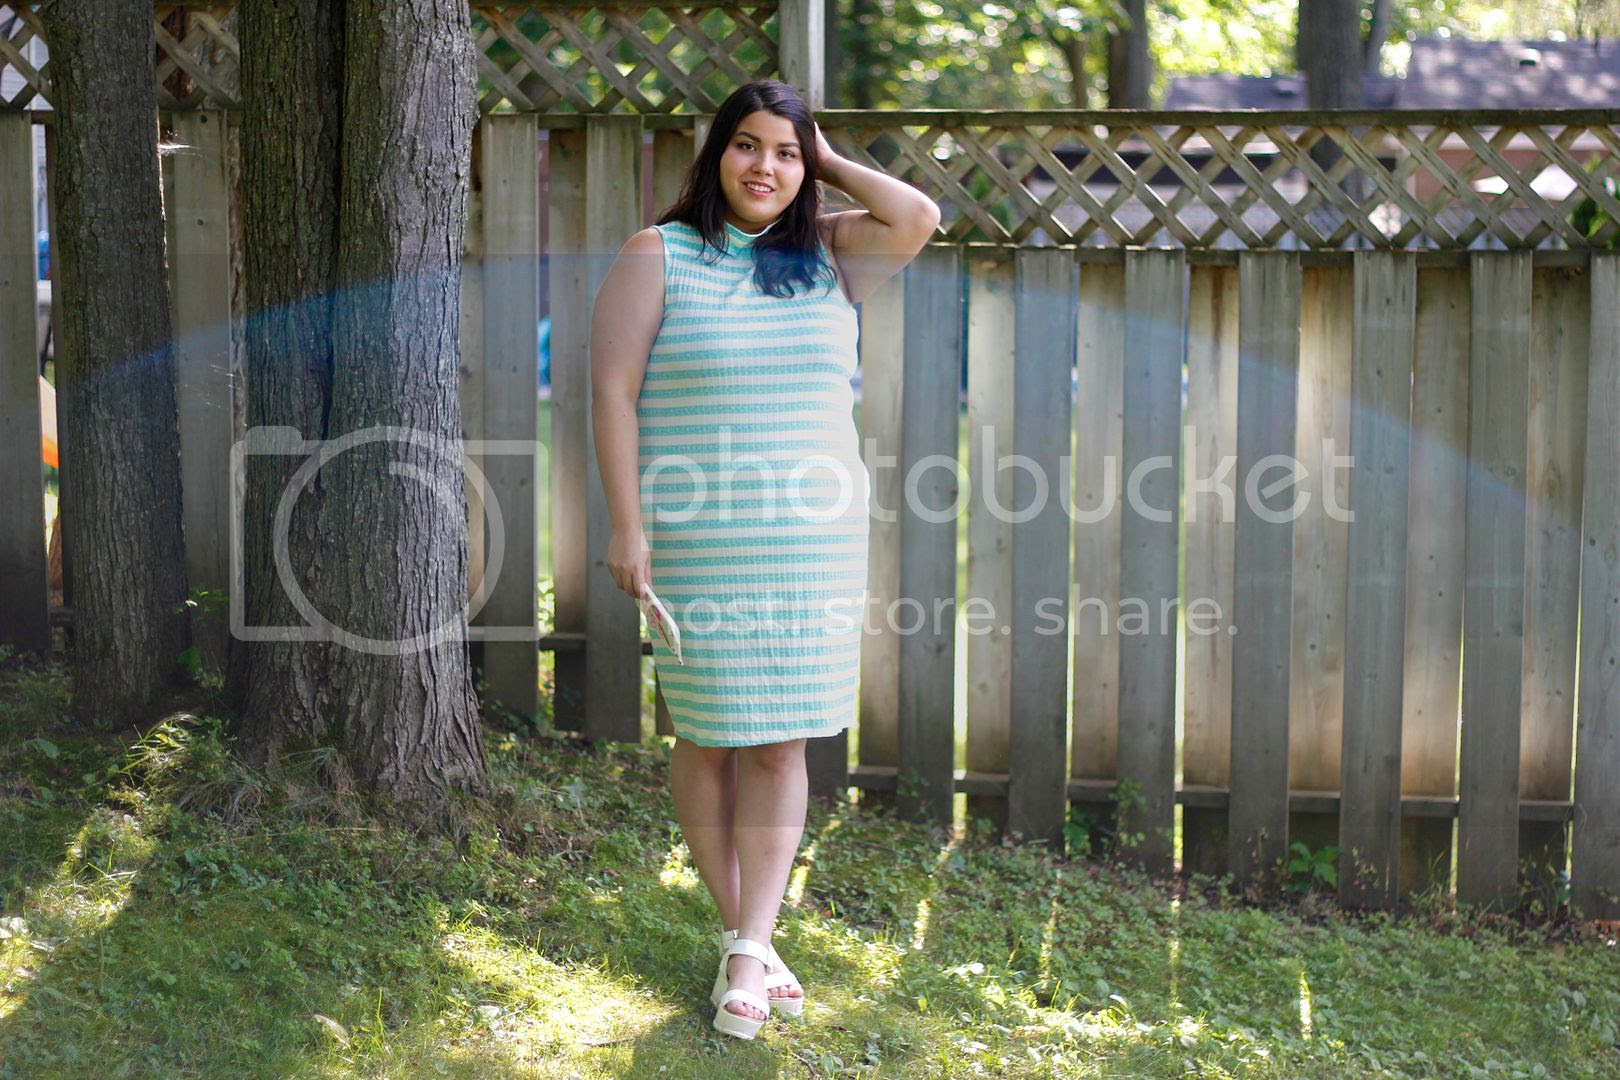 plus size fashion toronto canada blogger 10 dollar mall review clothes fashion outfit plus size